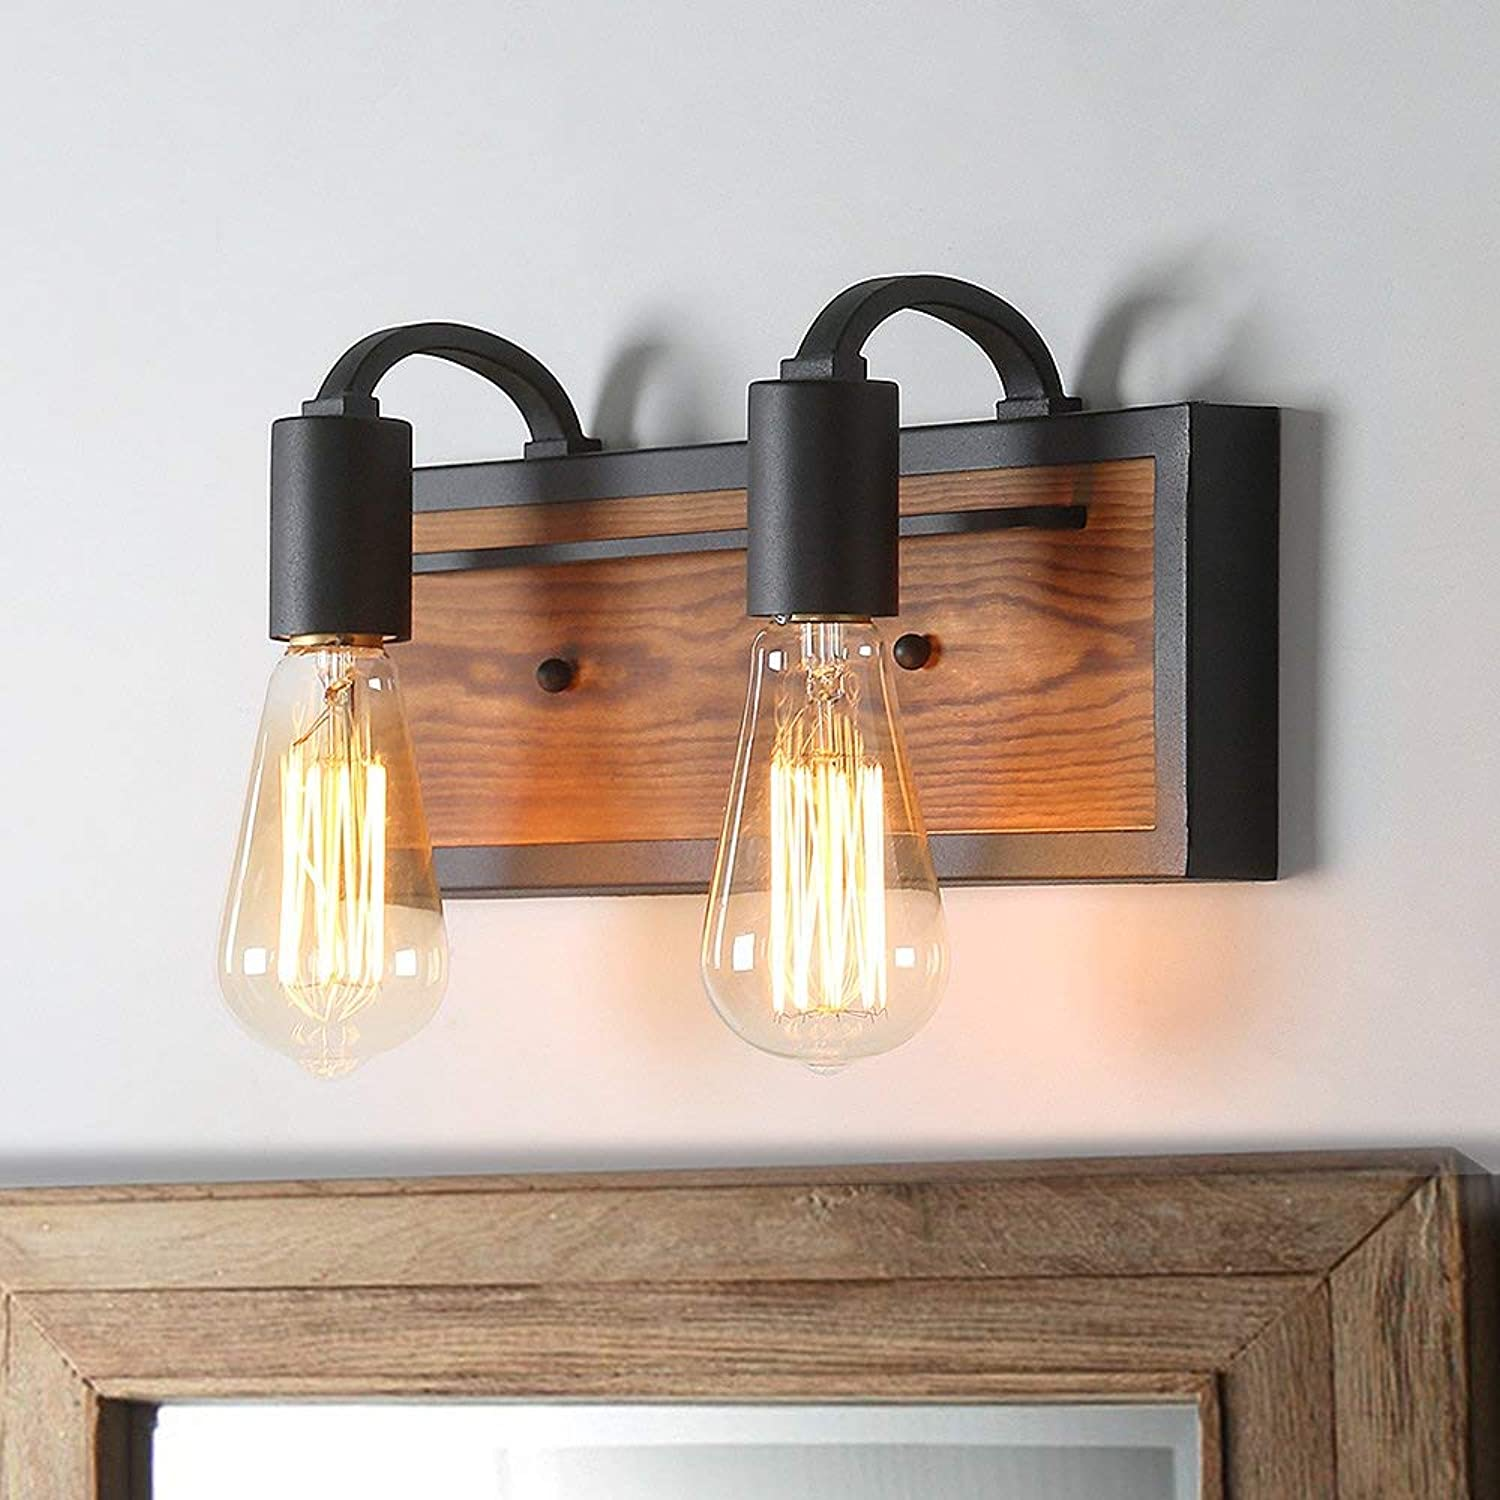 LNC Bathroom Lighting Fixtures Over Mirror Farmhouse Vanity Sconce Rustic Wall Lamp, A03439